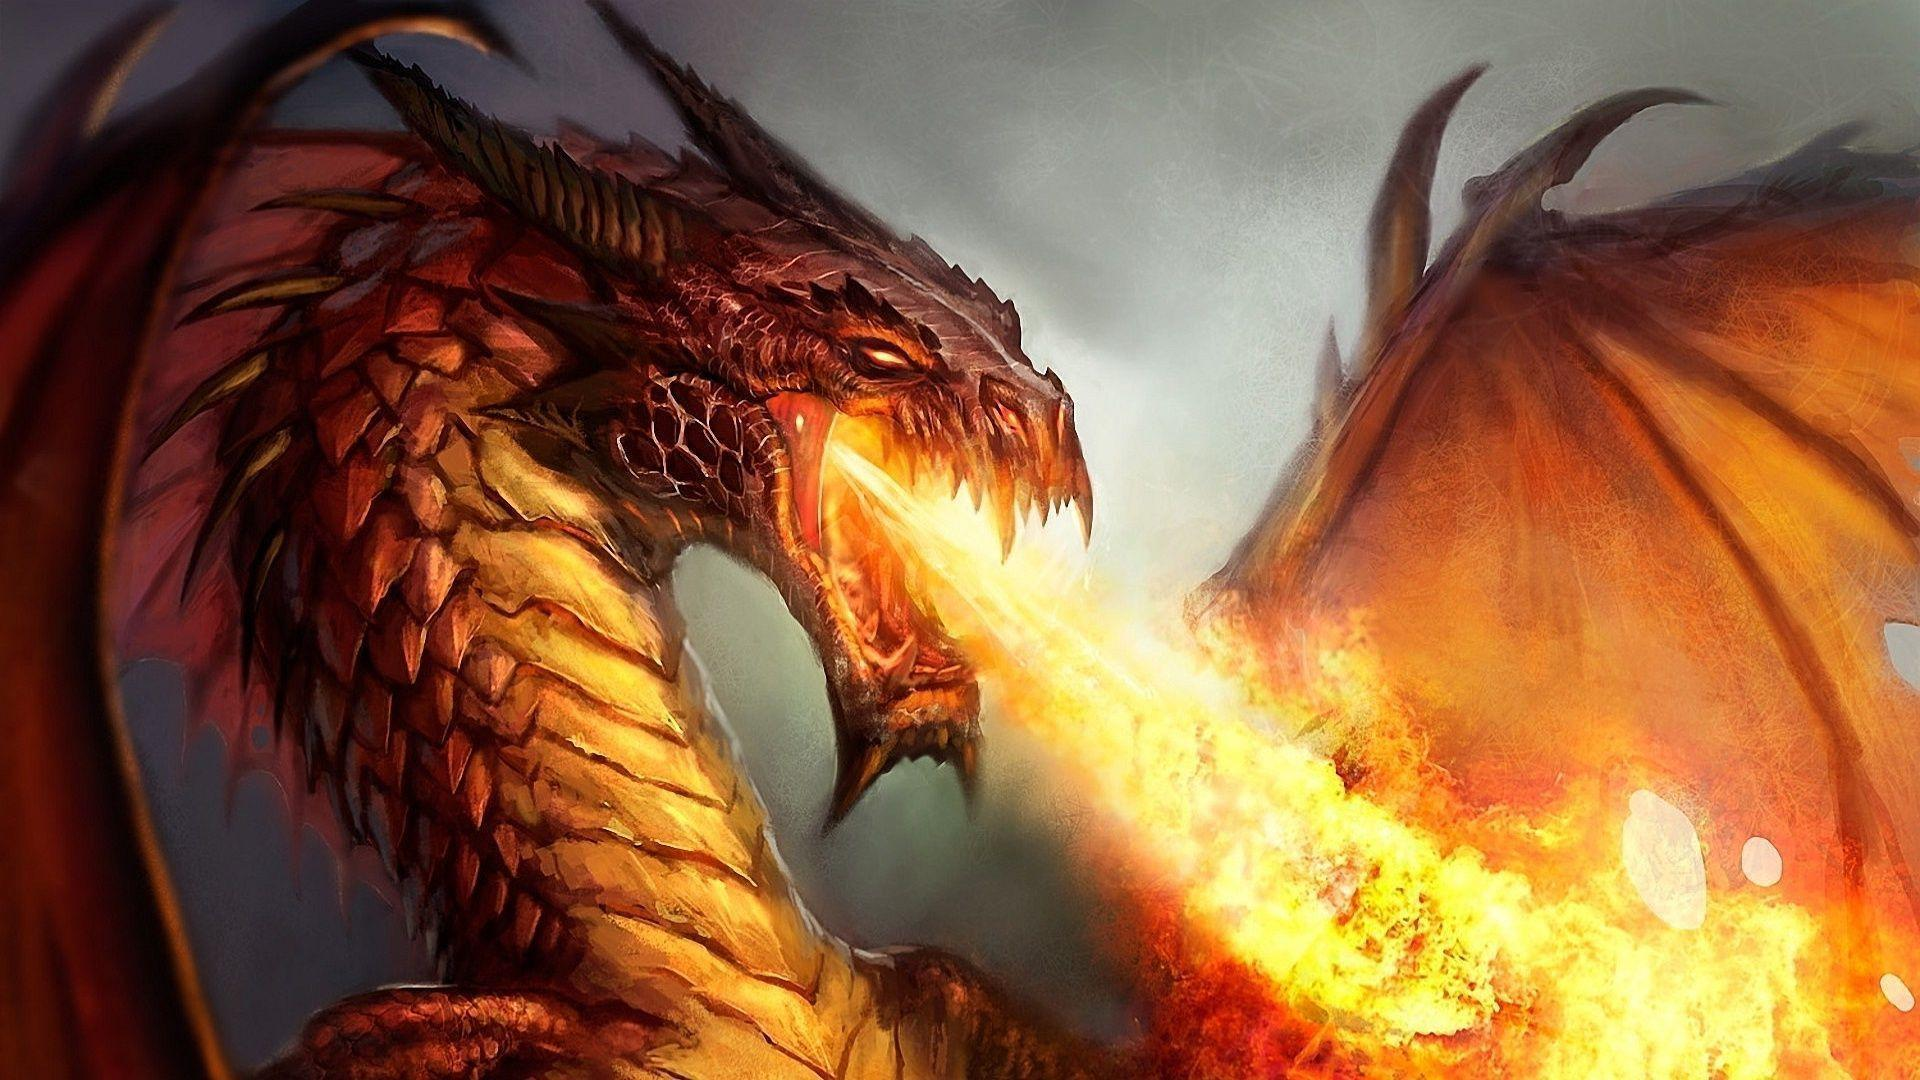 Fire Dragon Wallpapers 1920x1080